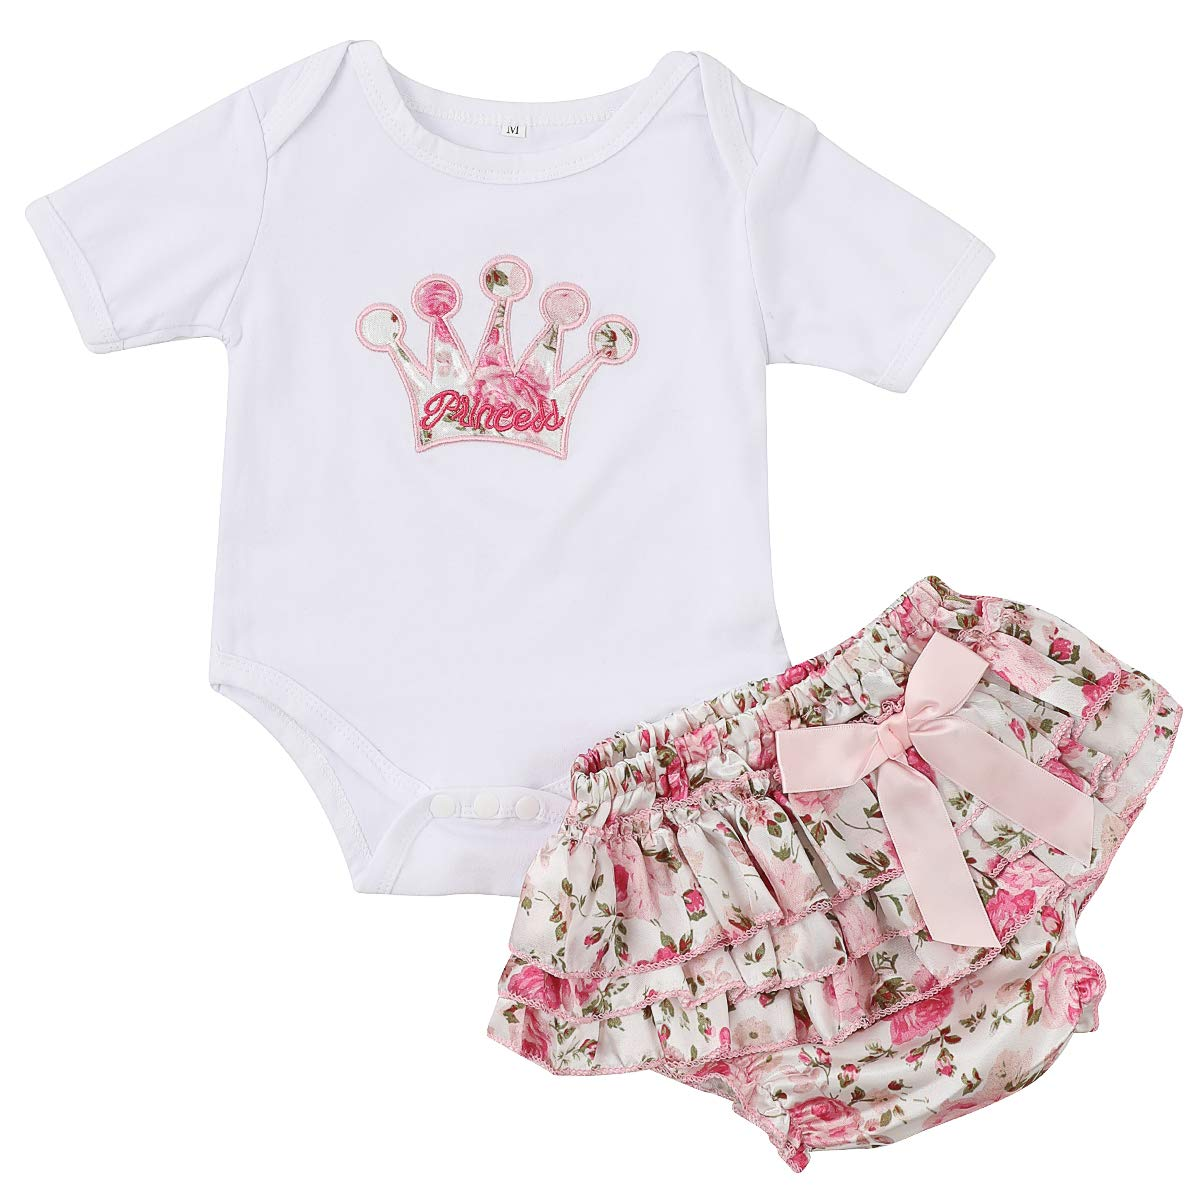 Toddler Newborn Baby Girls Long Sleeve Bodysuit Romper Floral Pants Hats Outfits Set